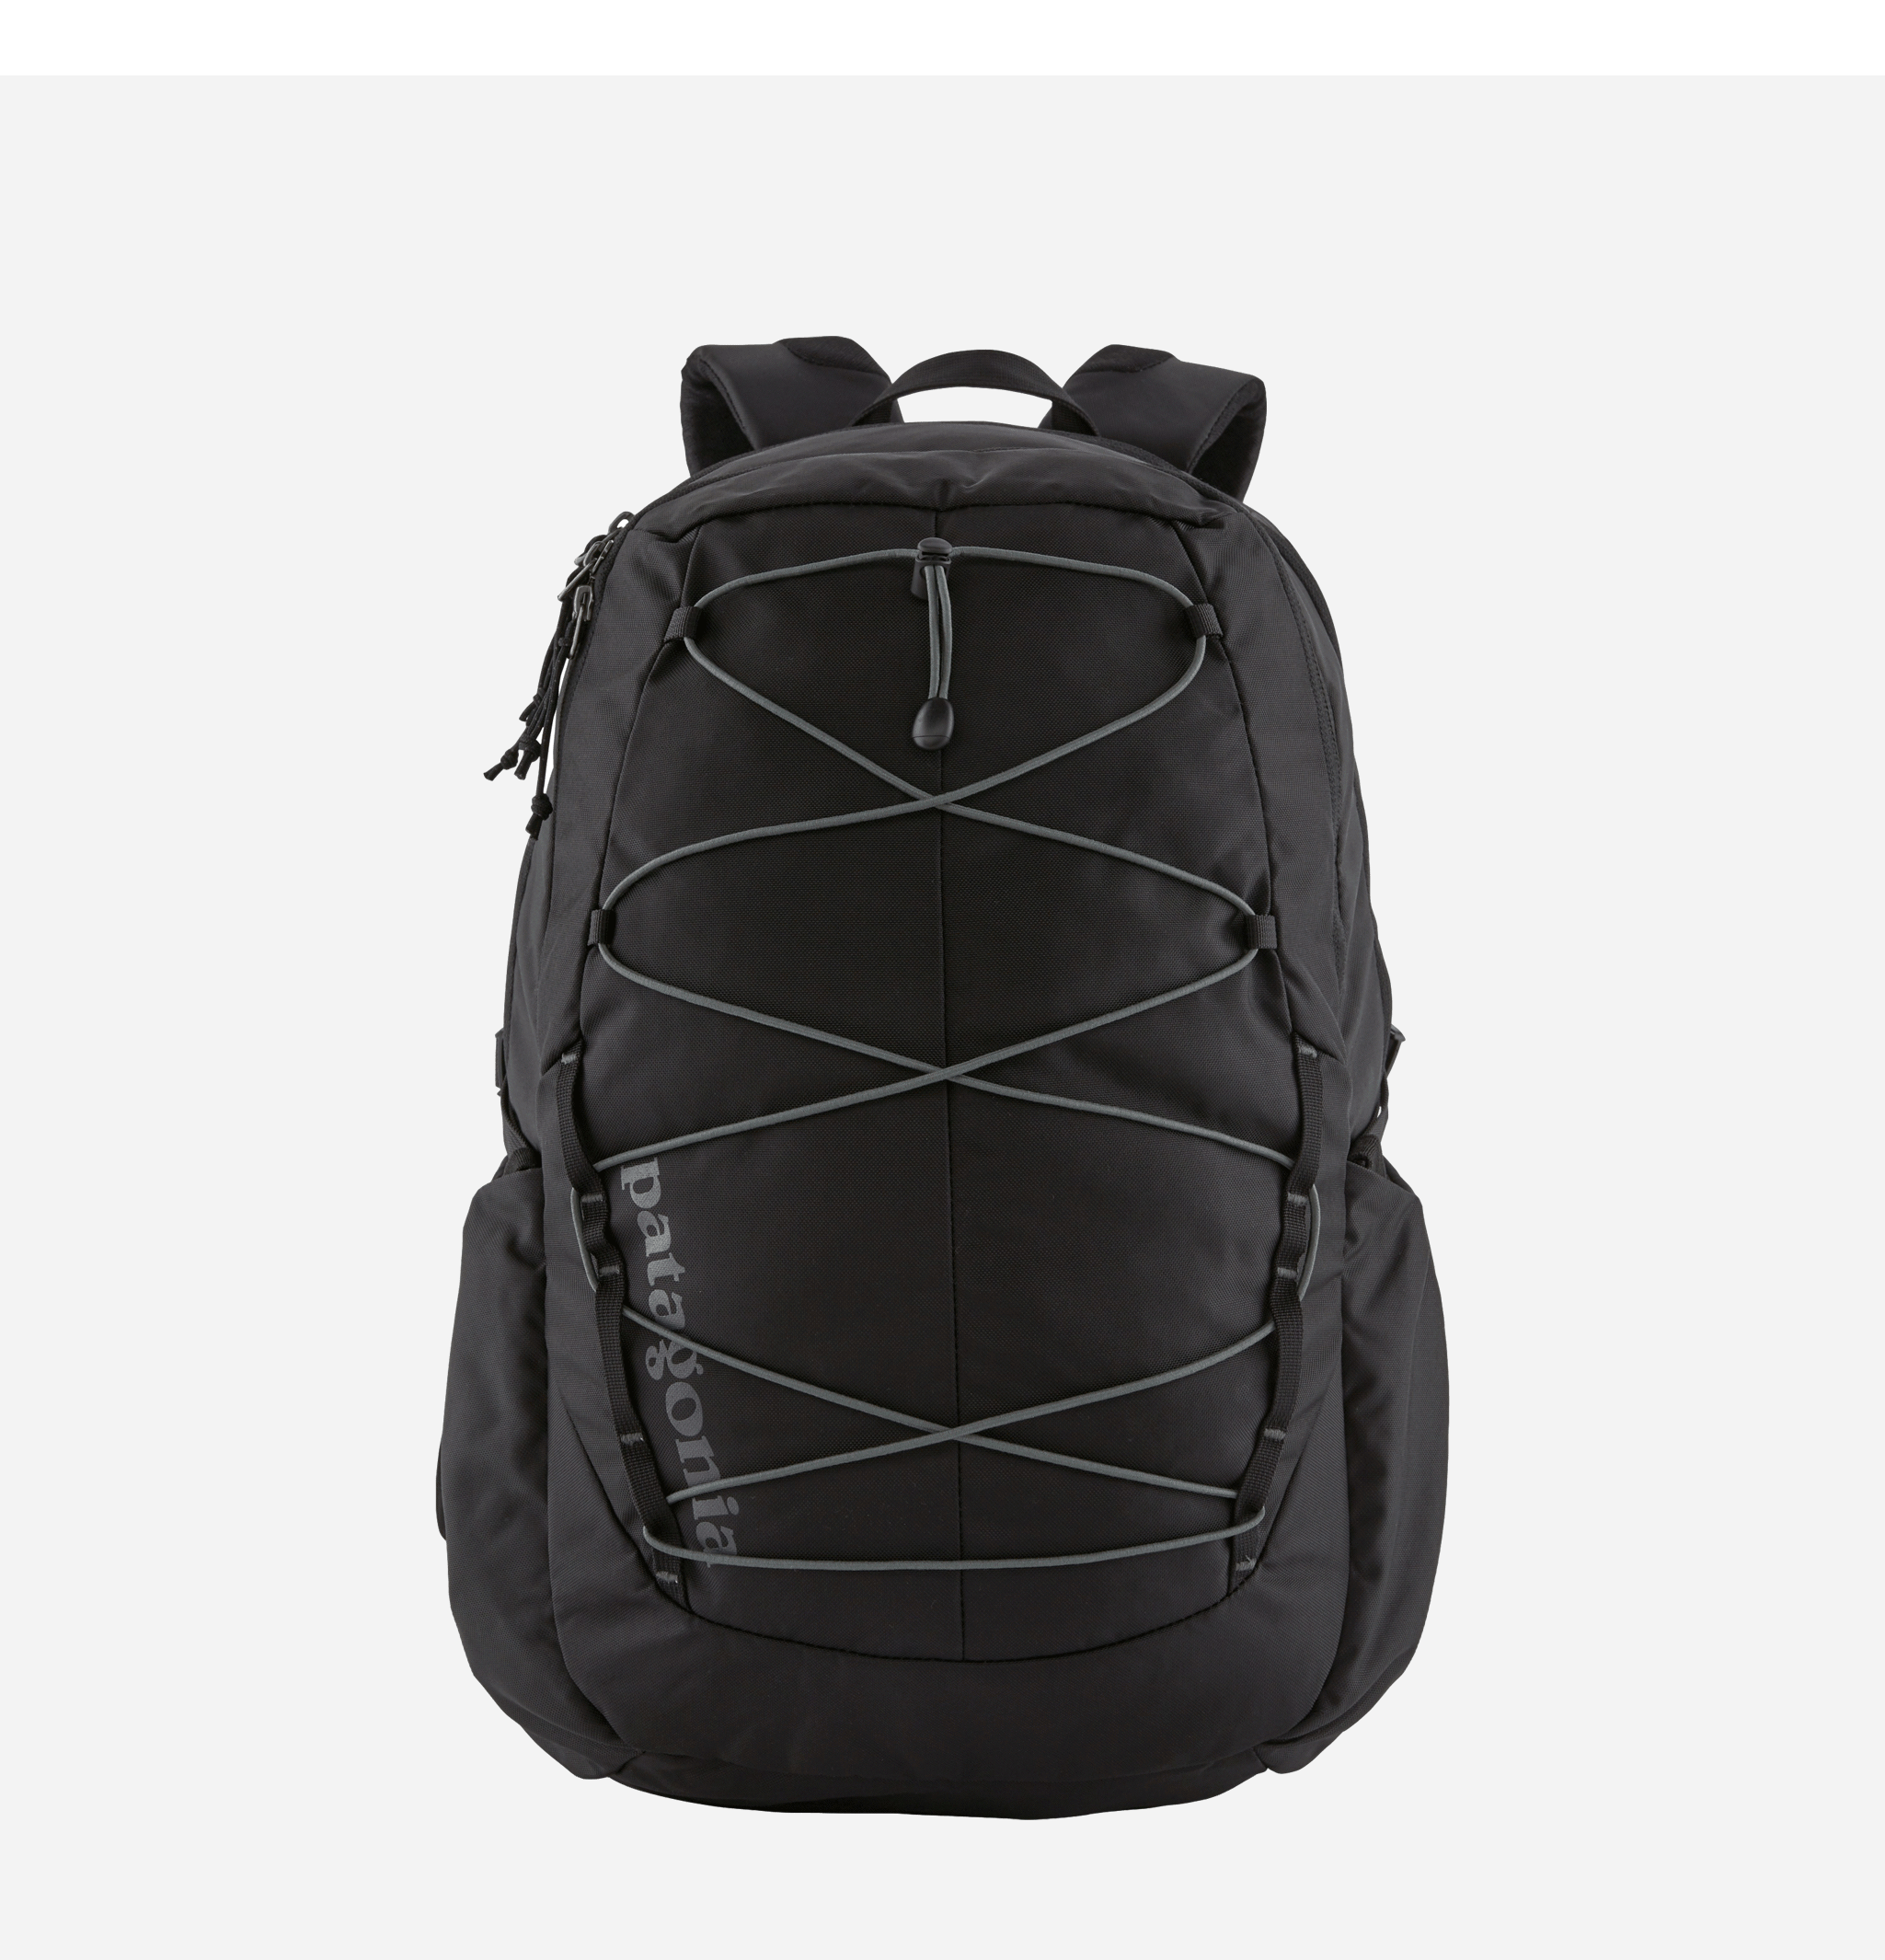 Chacabuco Black Backpack 30L